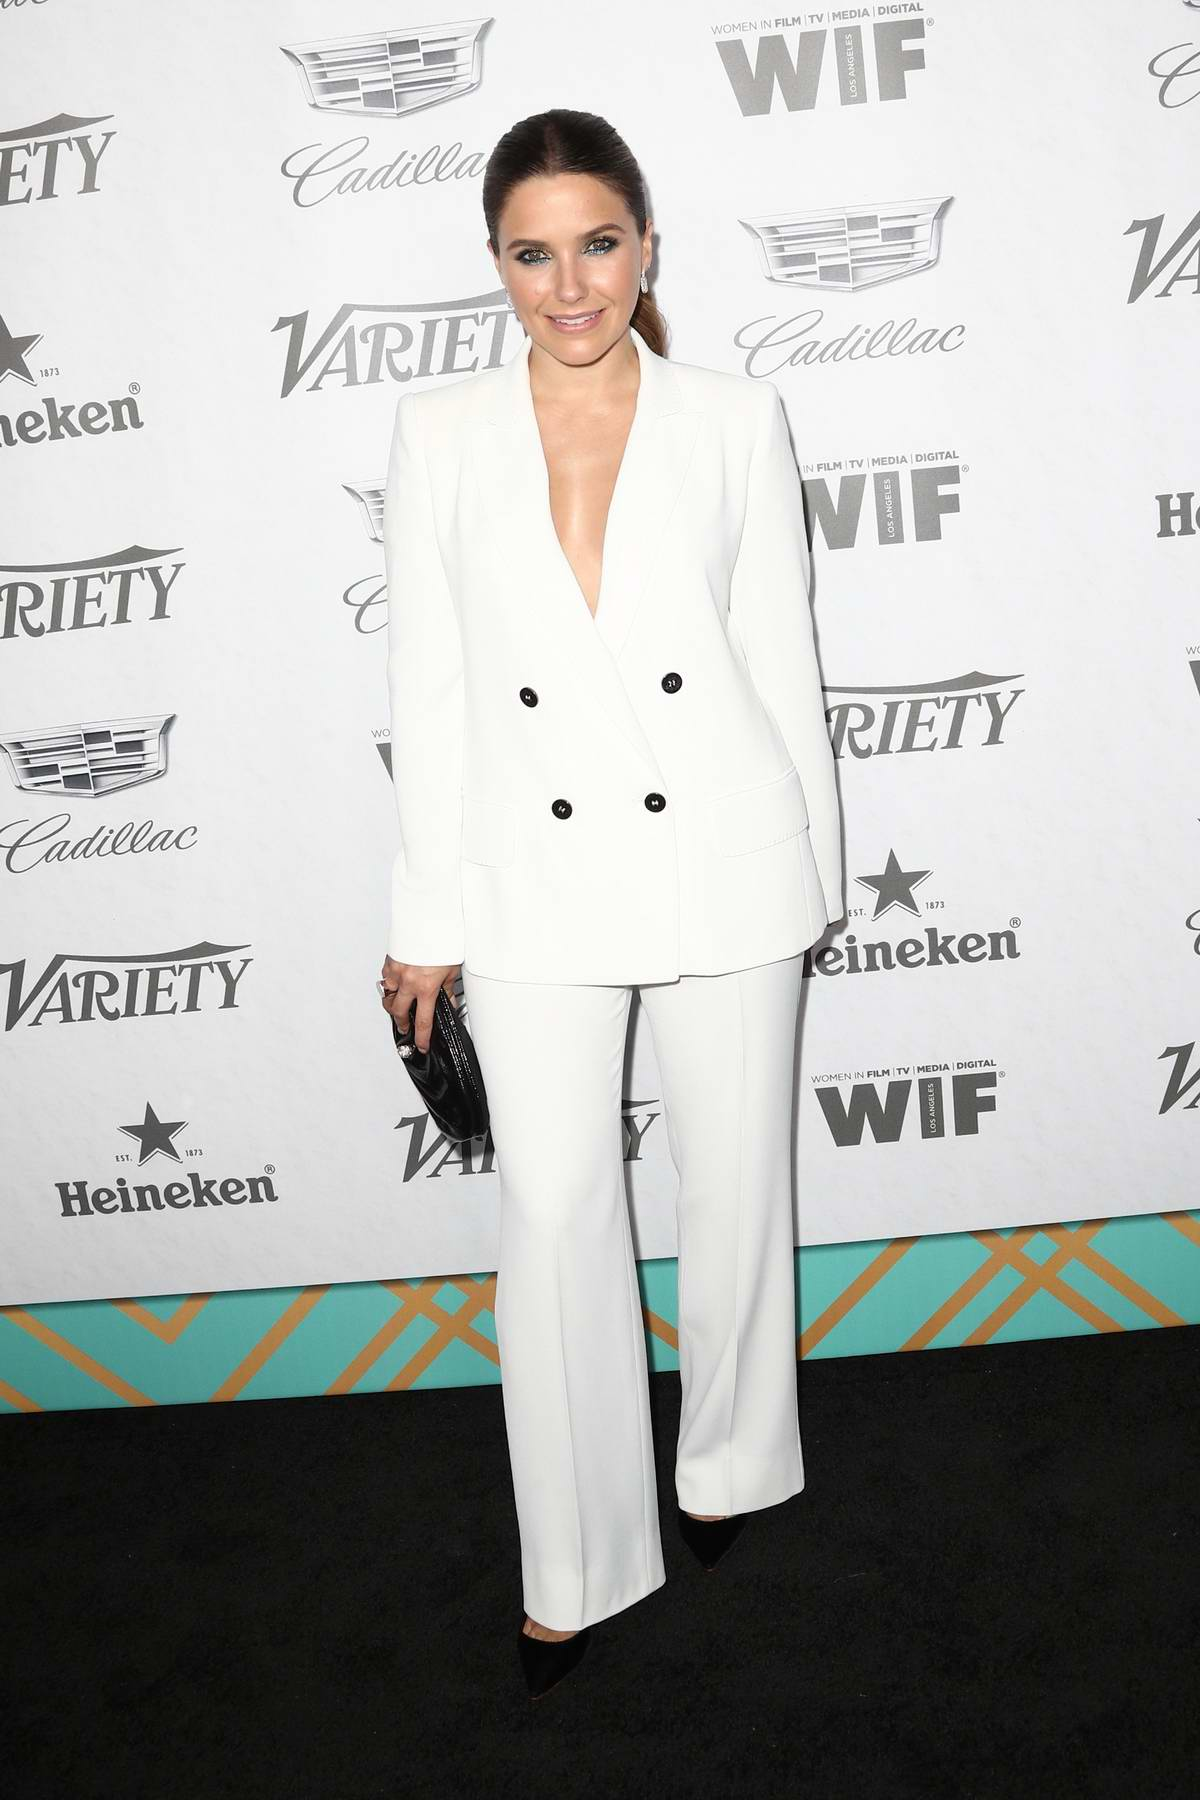 Sophia Bush attends Variety and Women in Film Pre-Emmy Party in Los Angeles